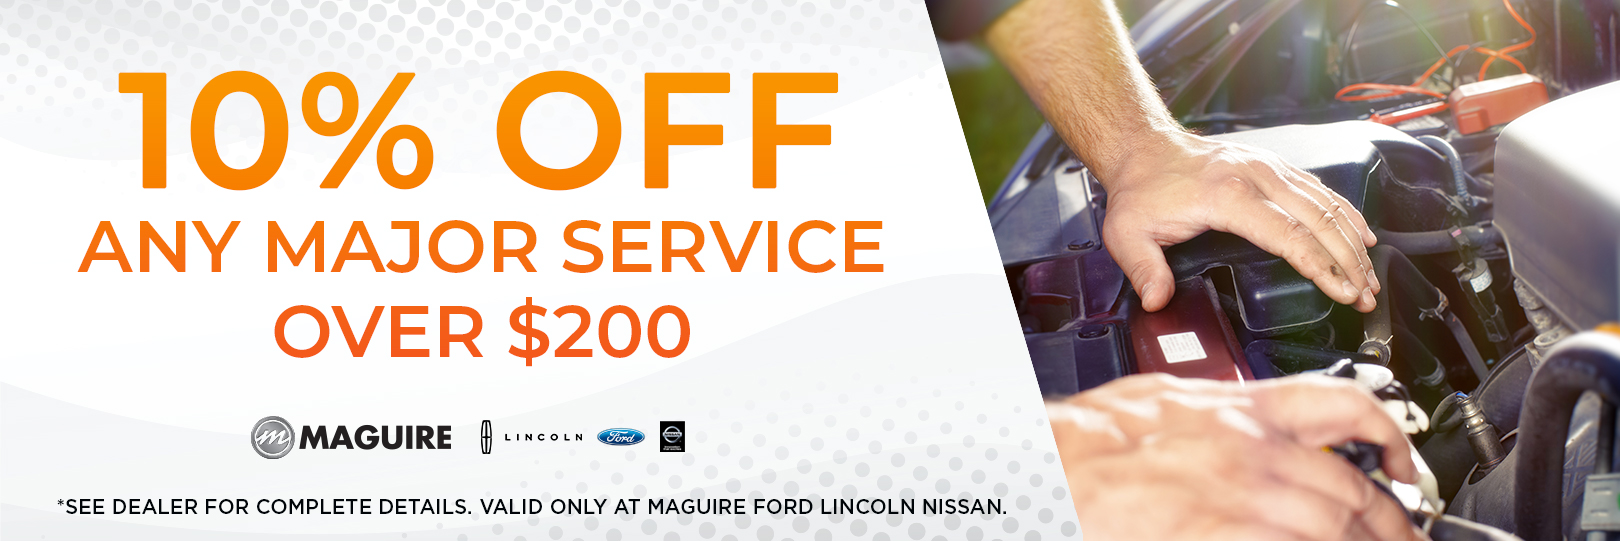 10% OFF ANY MAJOR SERVICE OVER $200